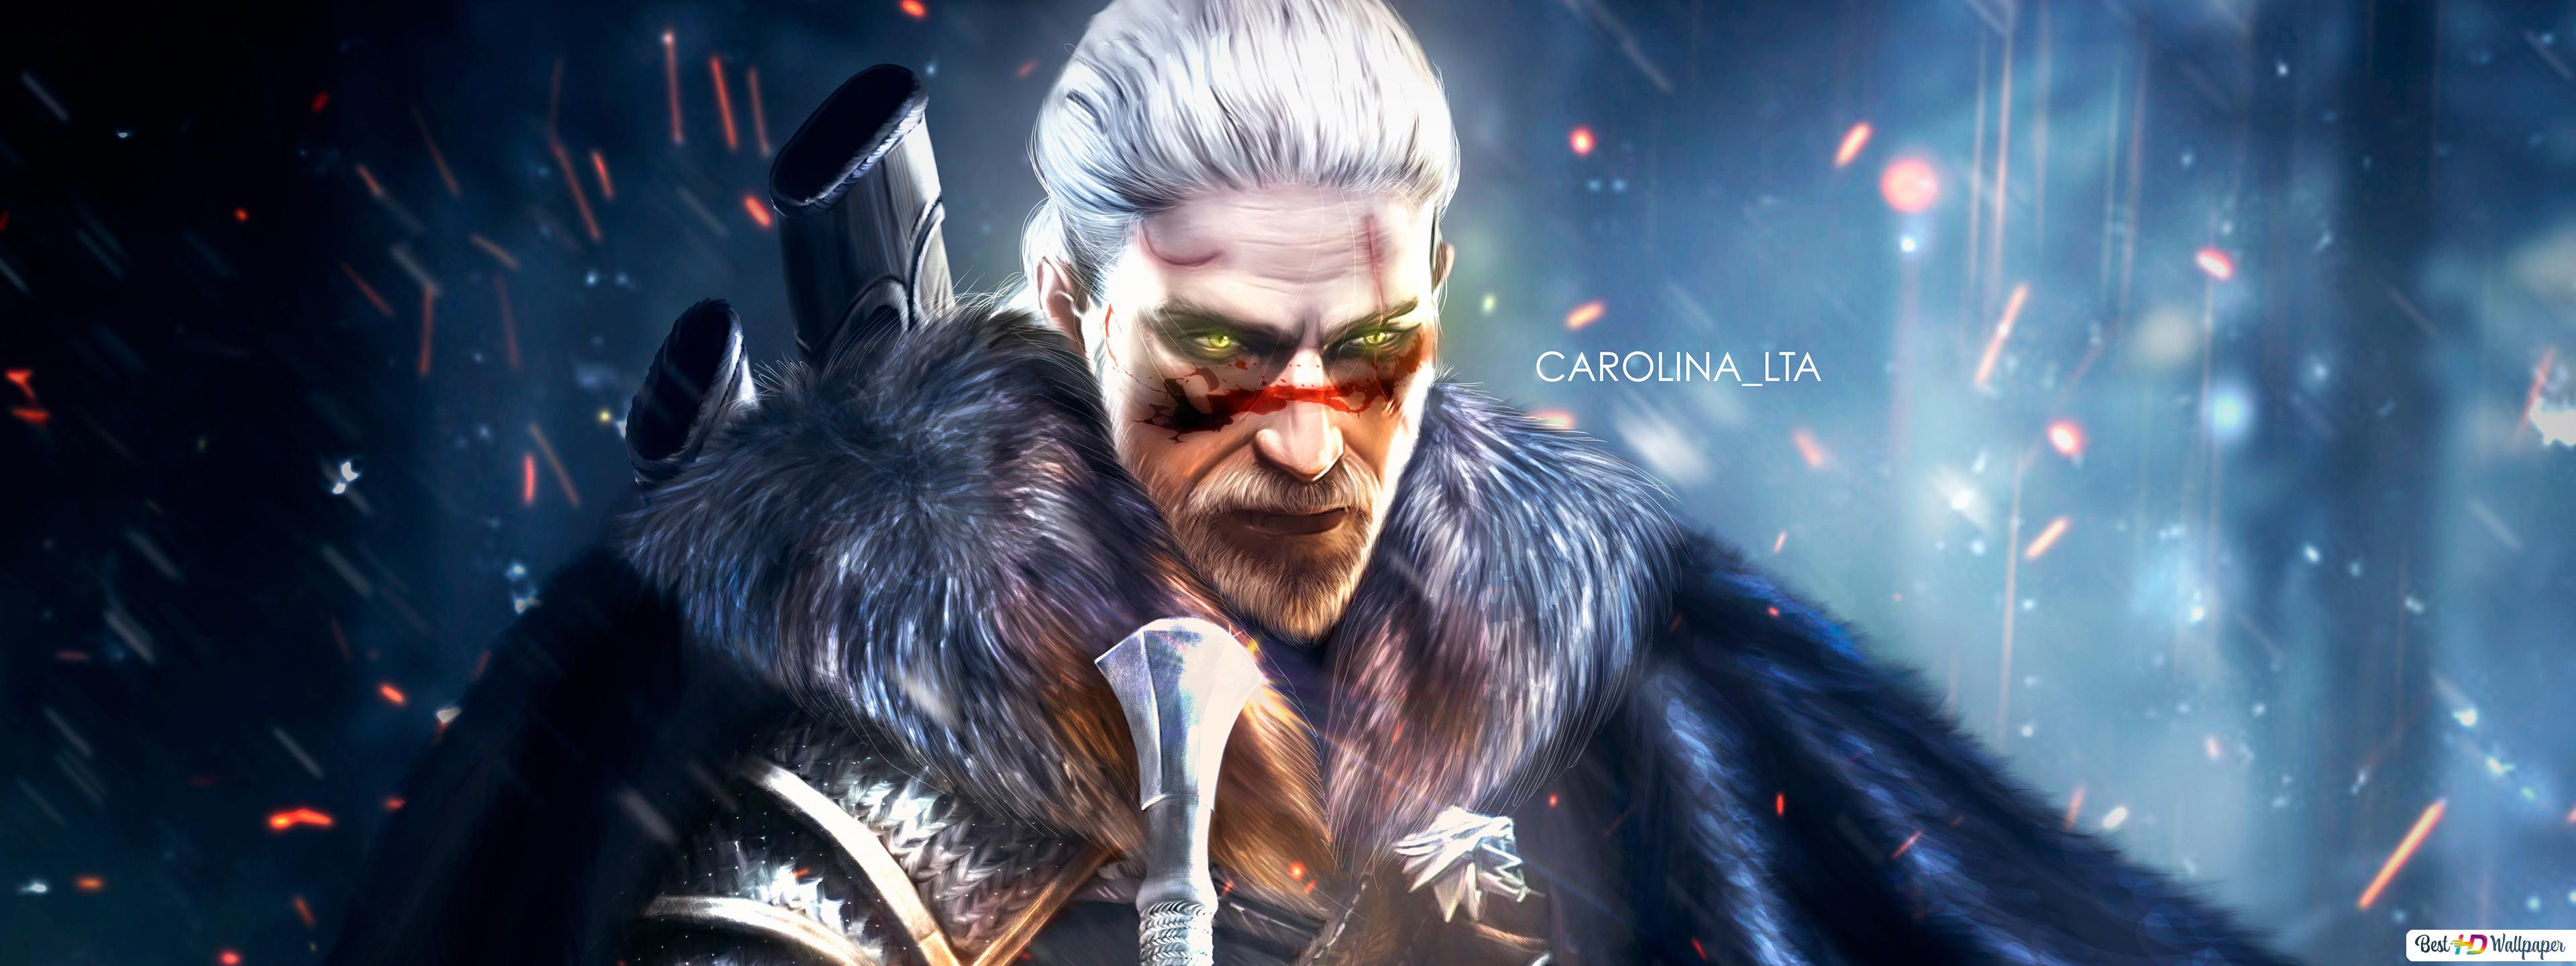 The Witcher 3 Wild Hunt Geralt Of Rivia Hd Wallpaper Download